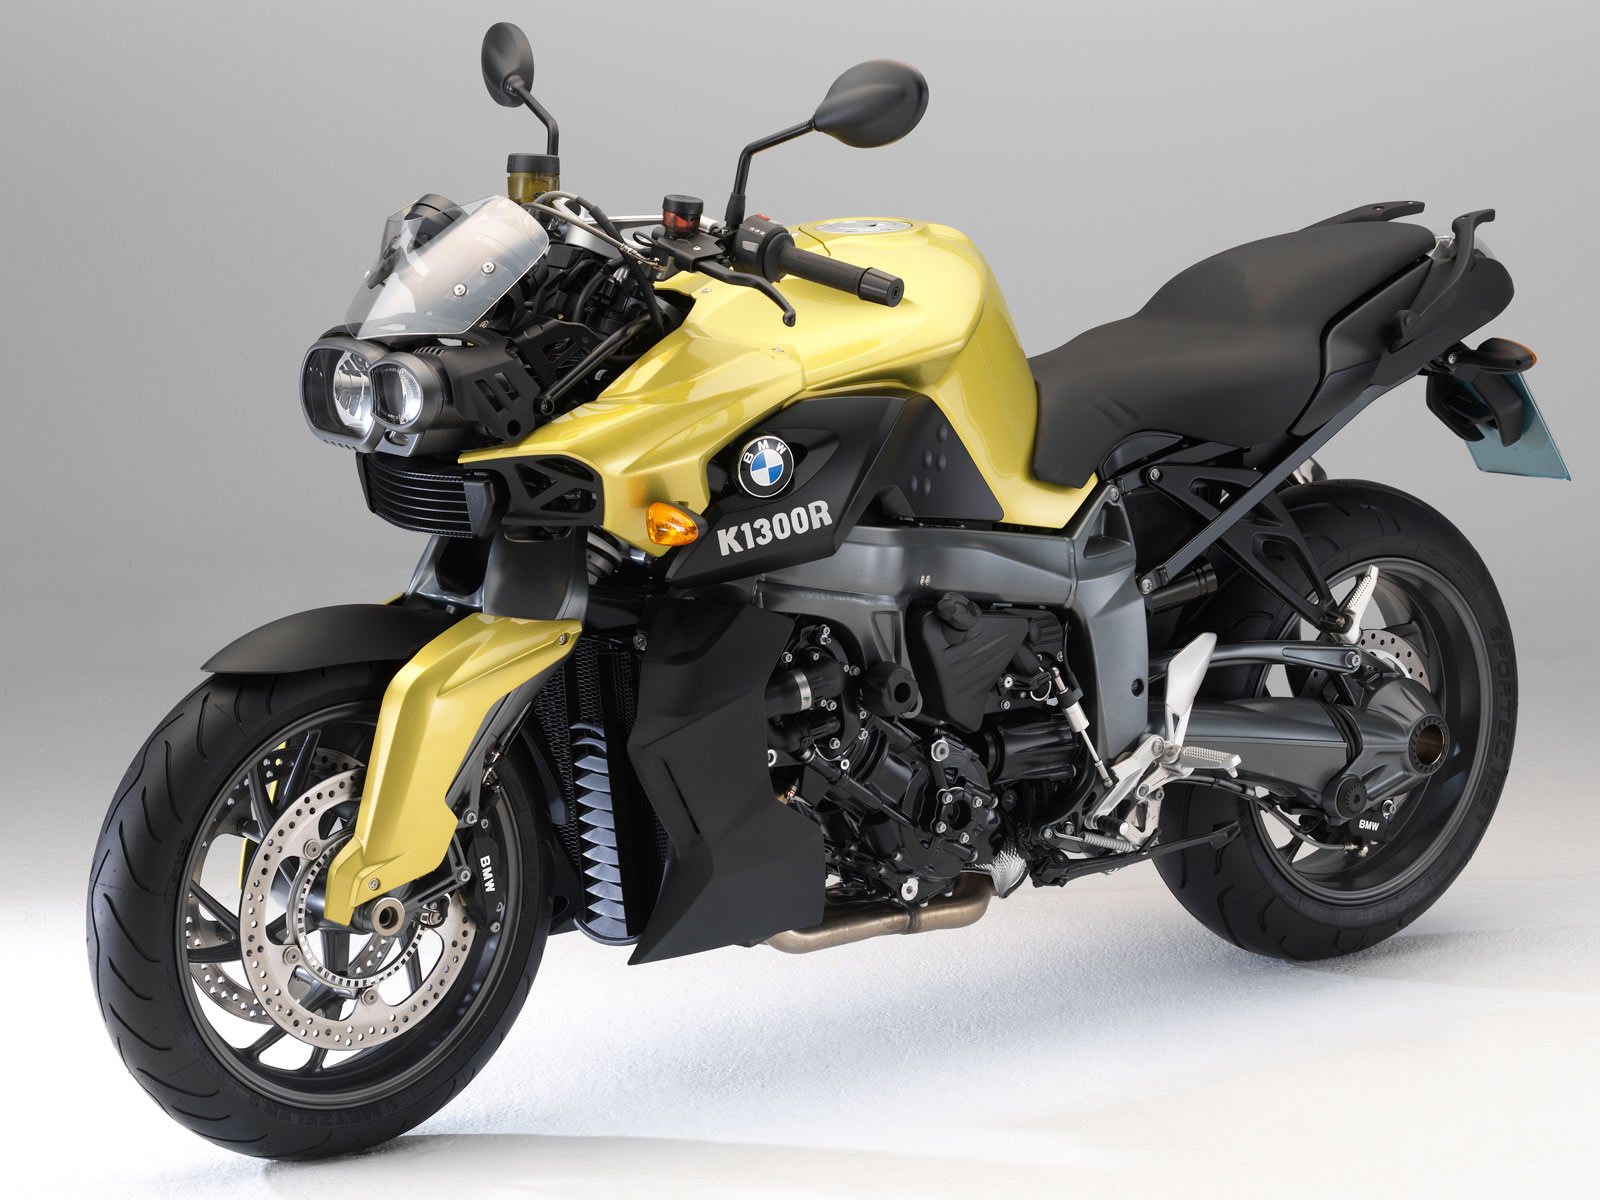 BMW K1300r | HD Wallpapers (High Definition) | Free Background